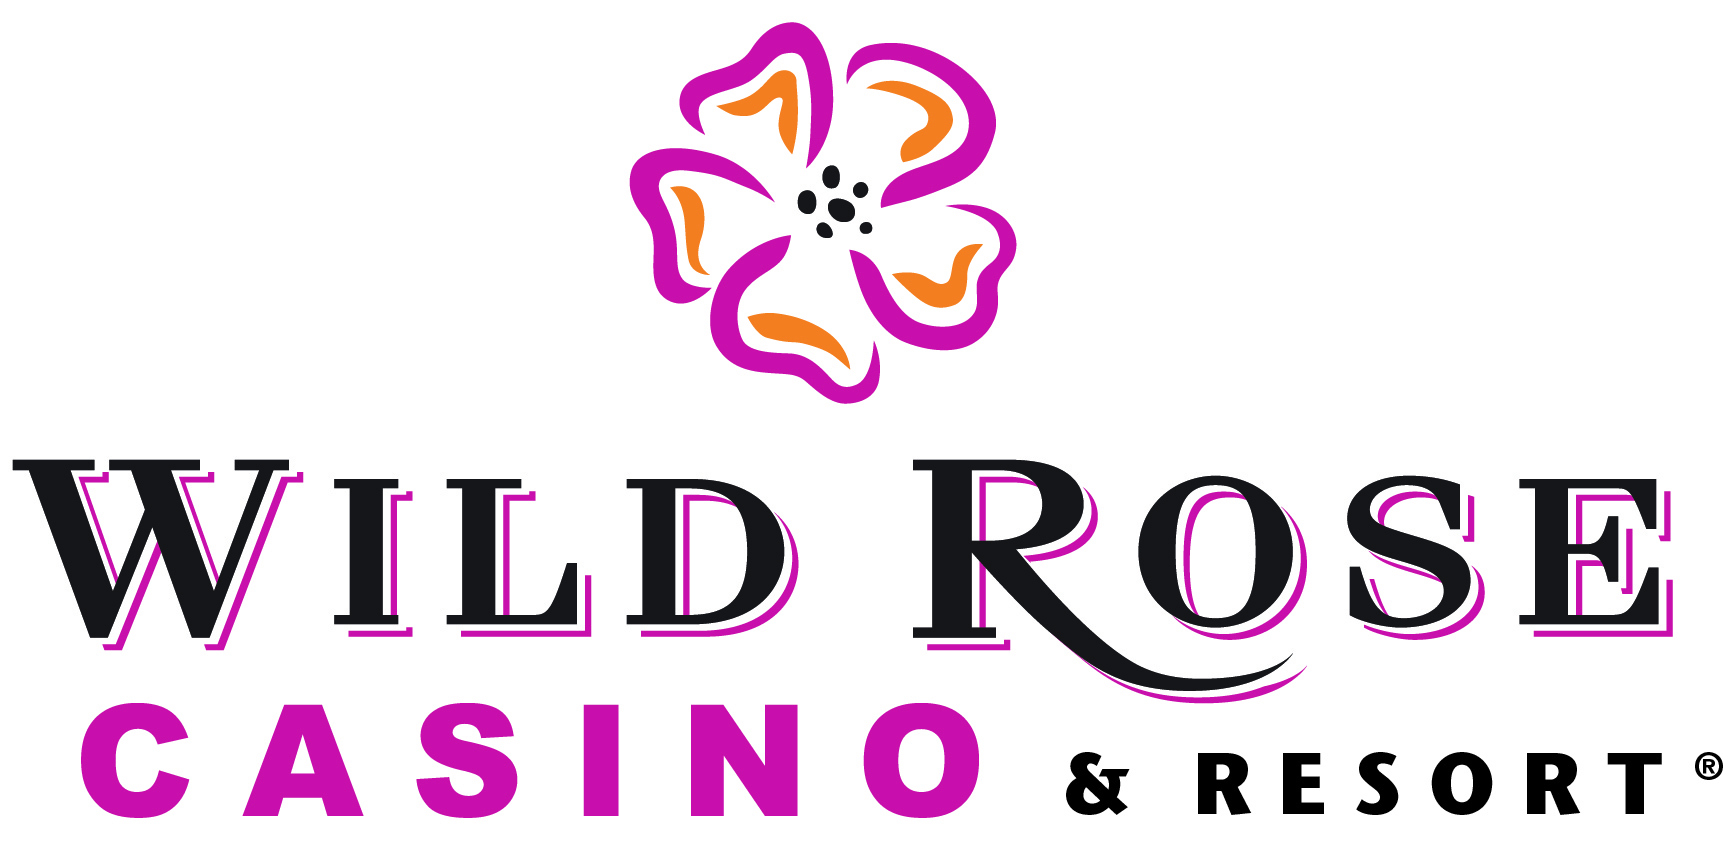 Casino resort rose wild horseshoe casino bossier city poker tournaments